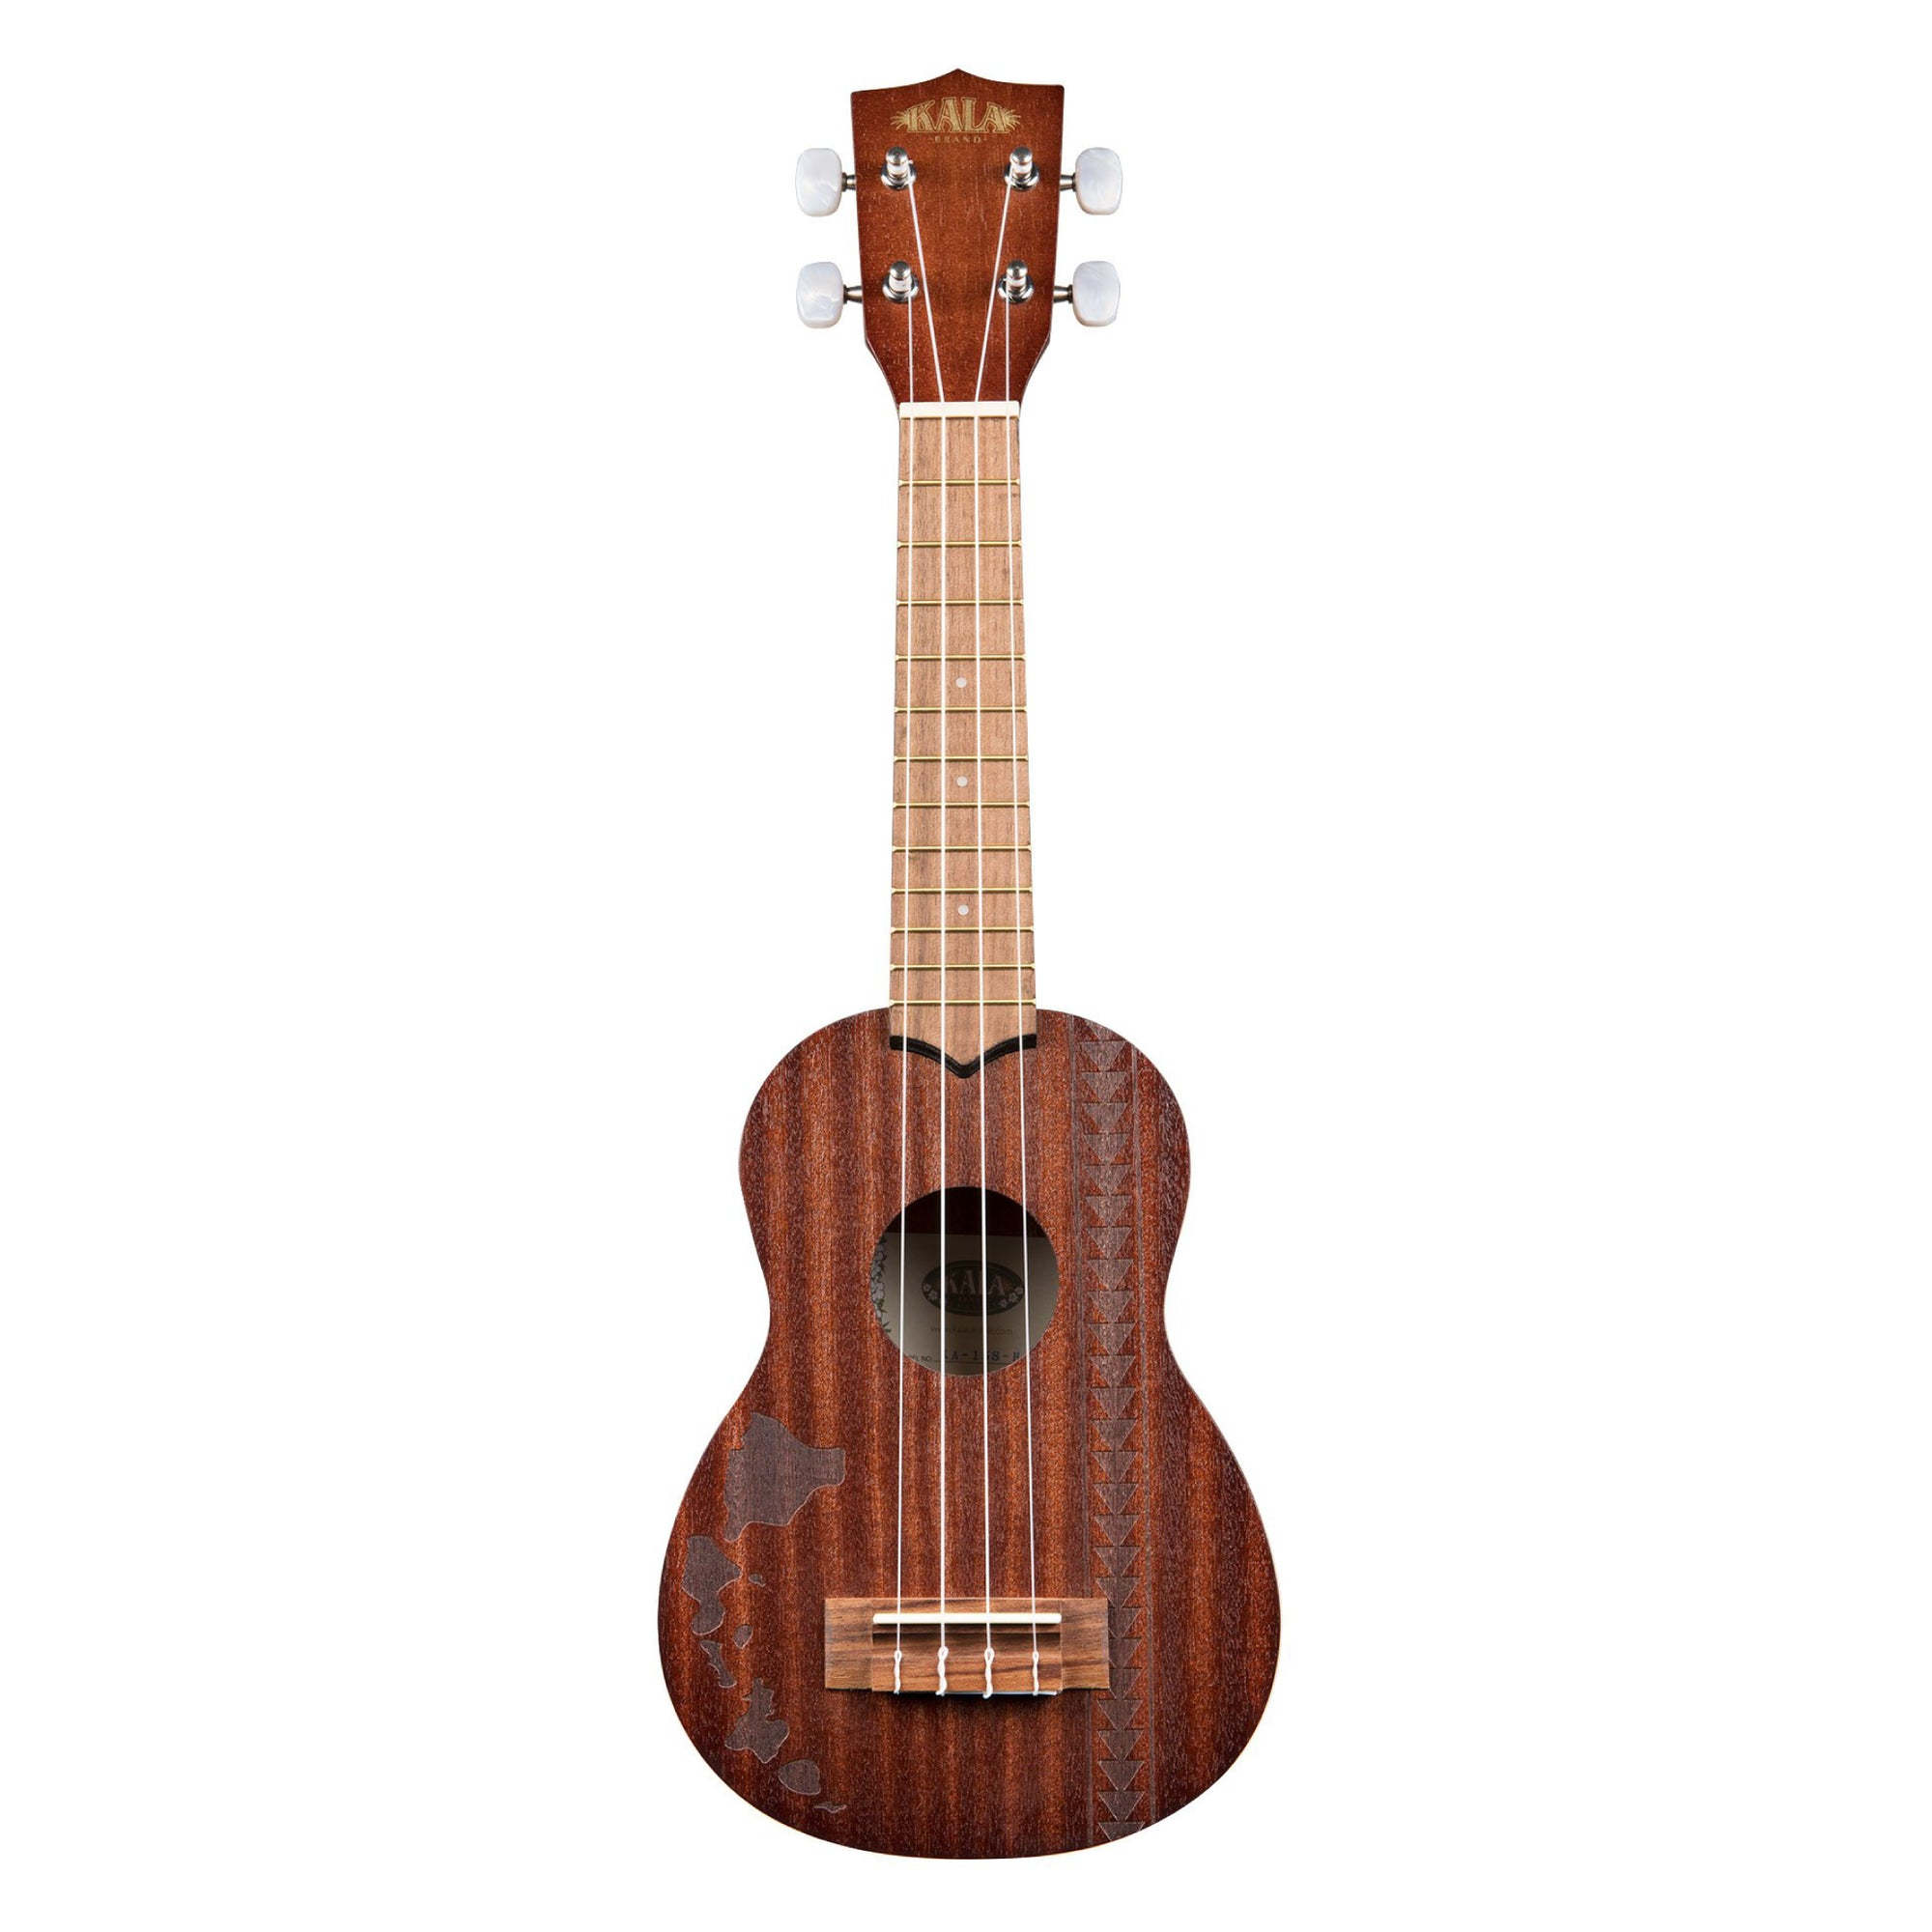 Kala KA-15S-H2 Satin Mahogany Soprano Ukulele w/ Hawaiian Islands & Tattoo